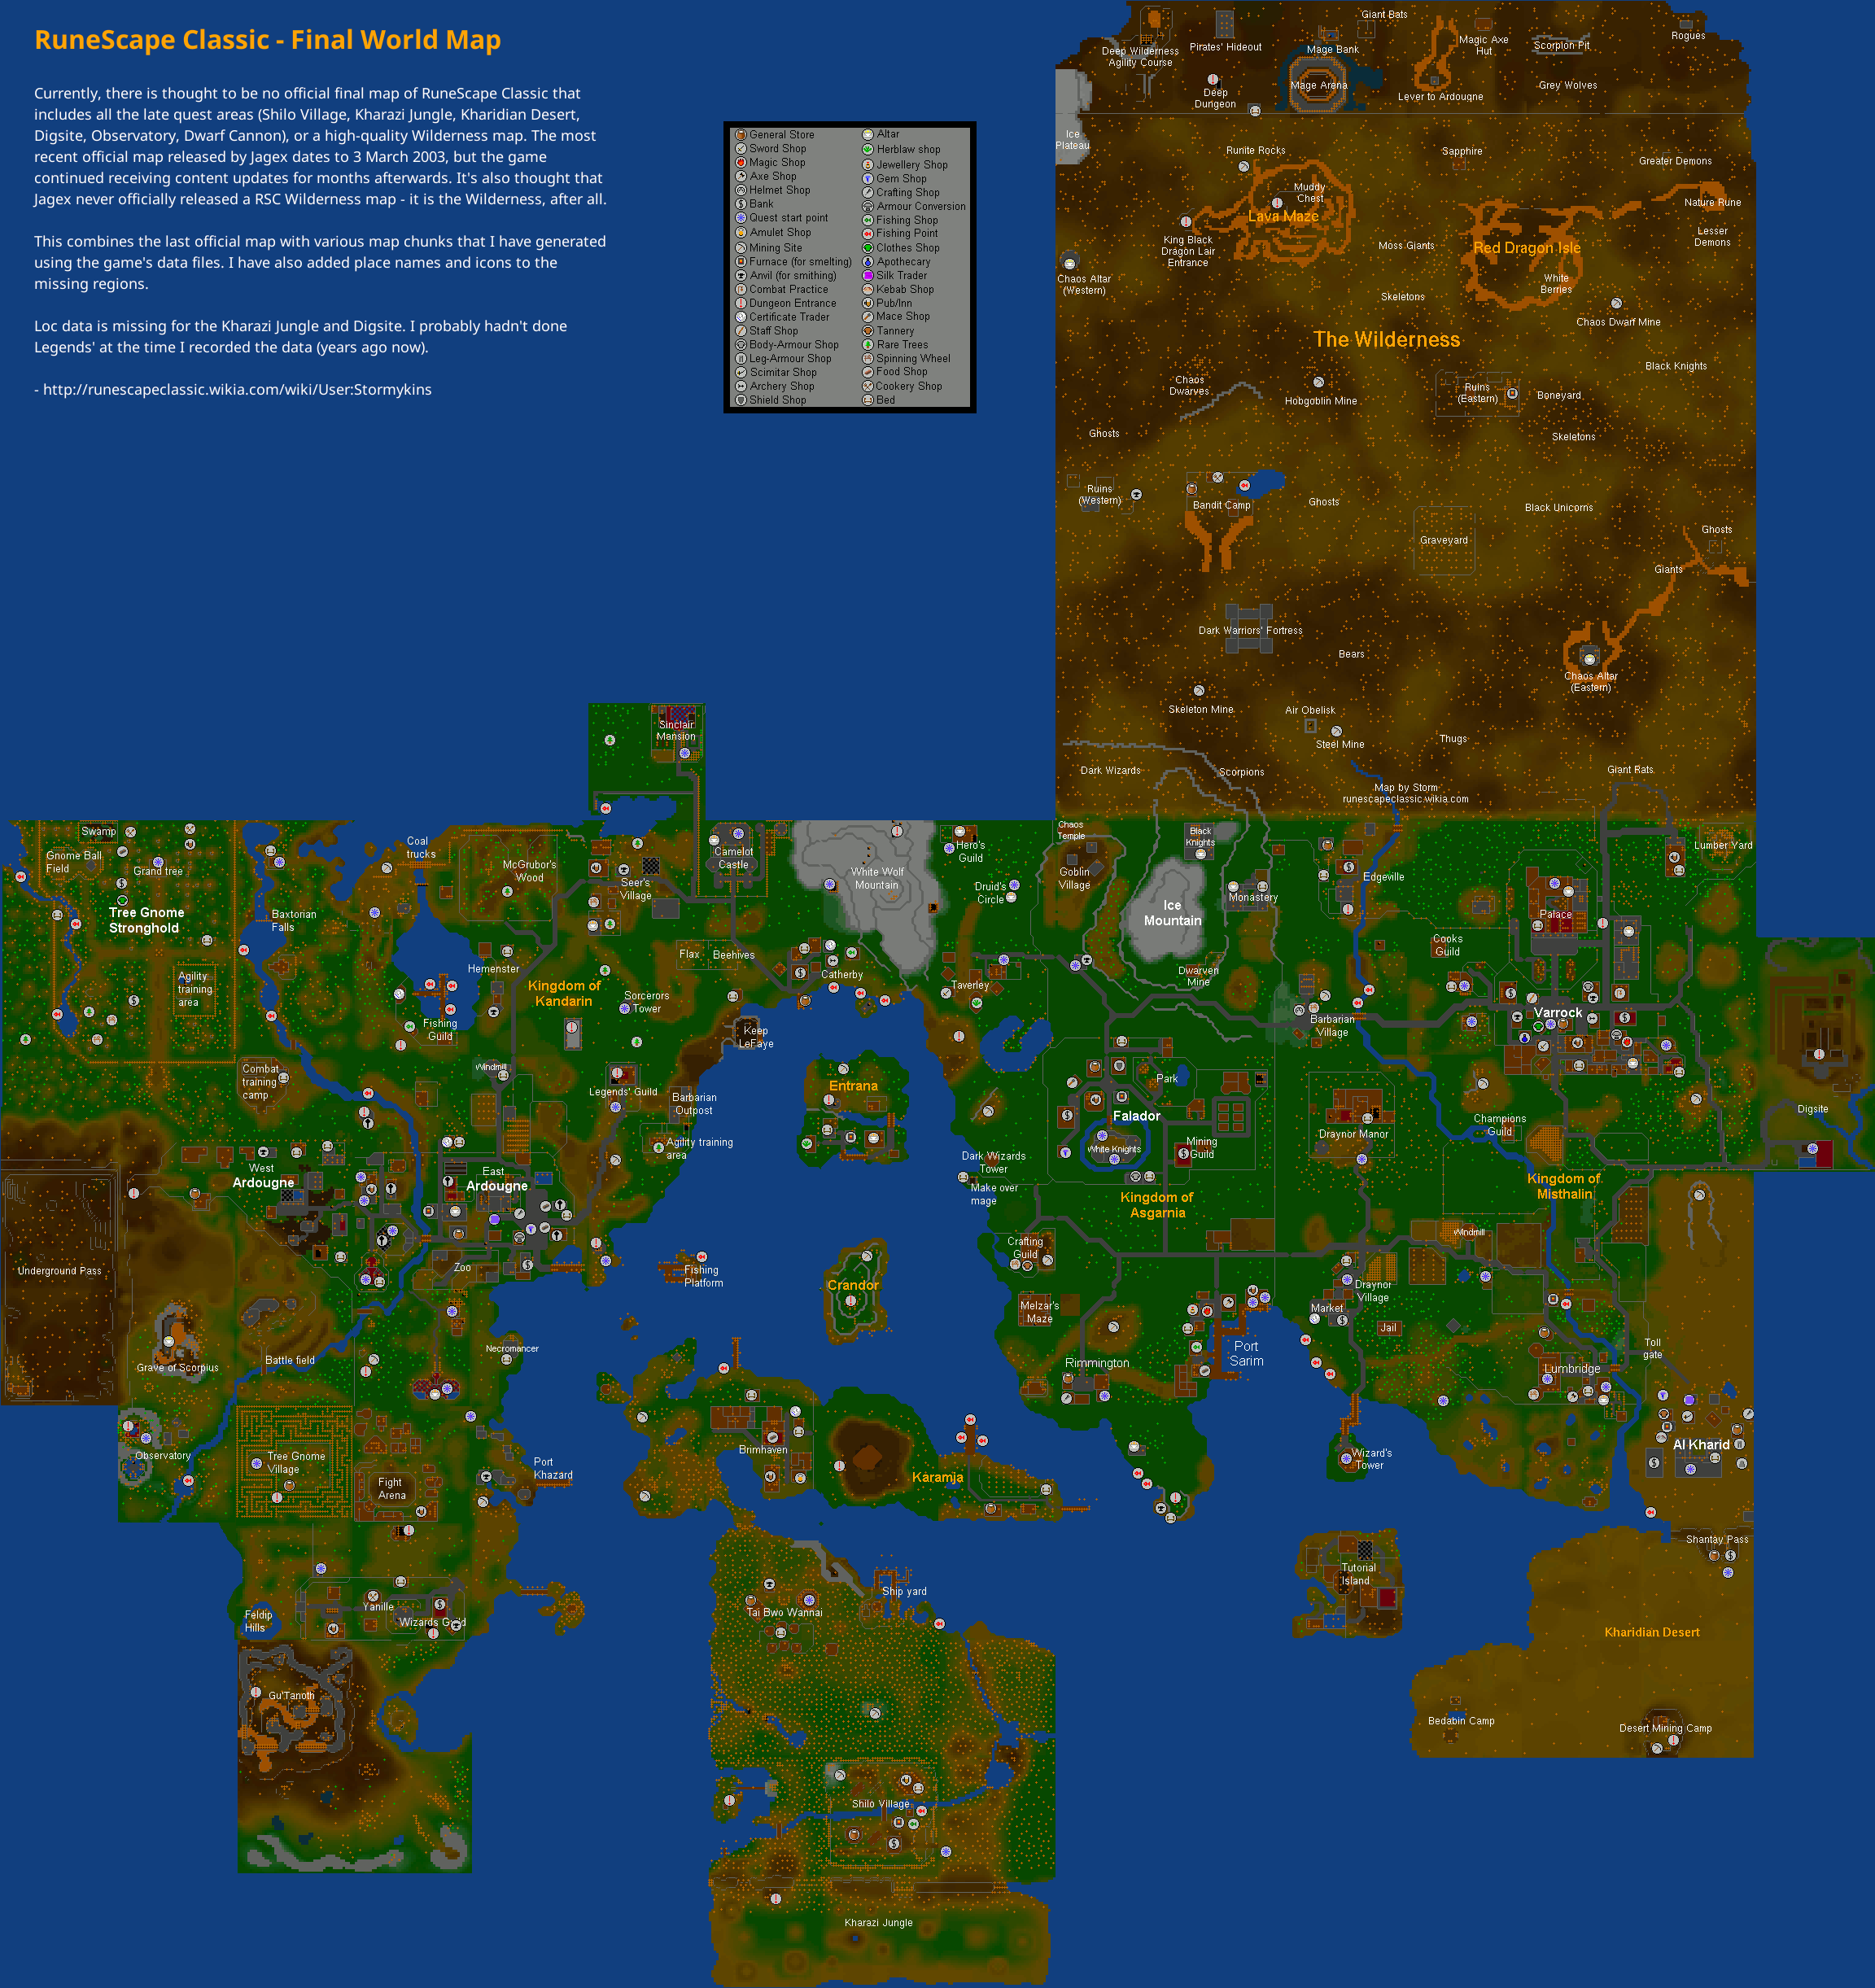 RuneScape Classic Map | RuneScape Classic Wiki | FANDOM powered by Wikia